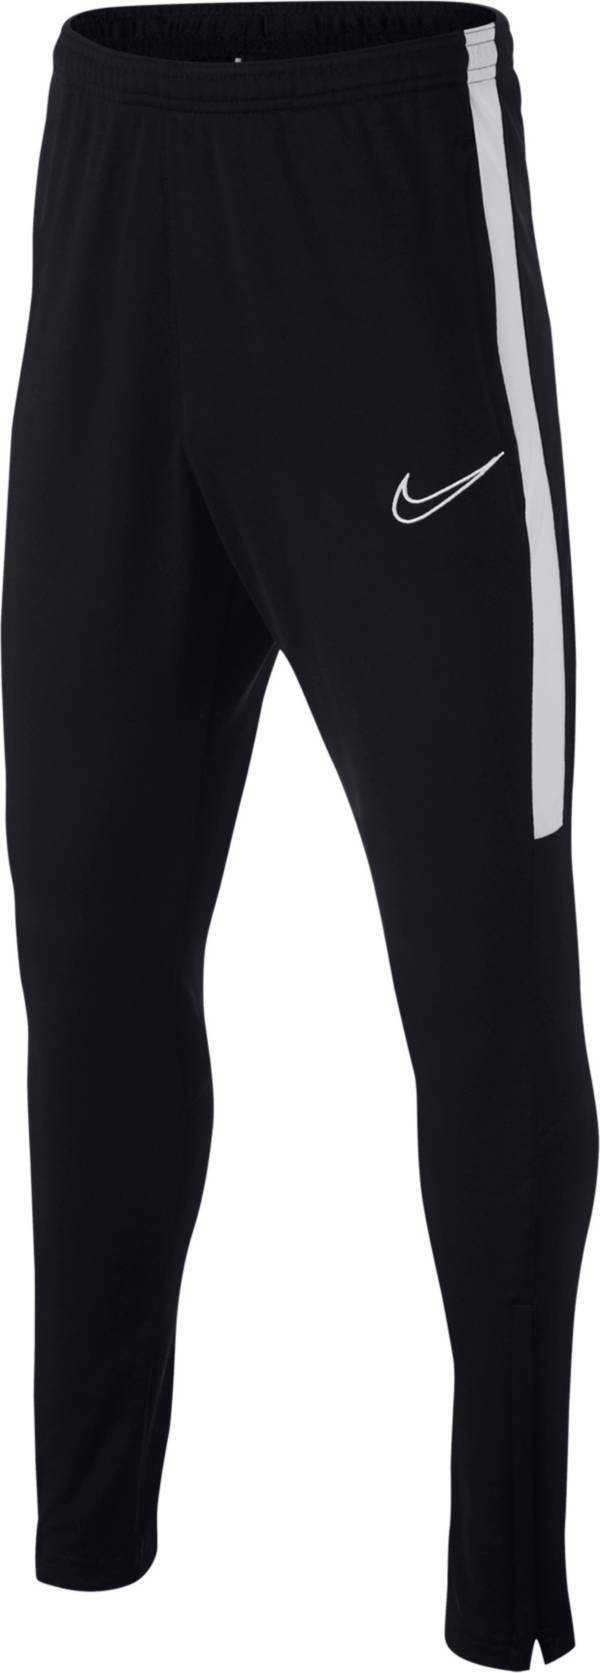 Nike Boys' Dri-FIT Academy Soccer Pants product image